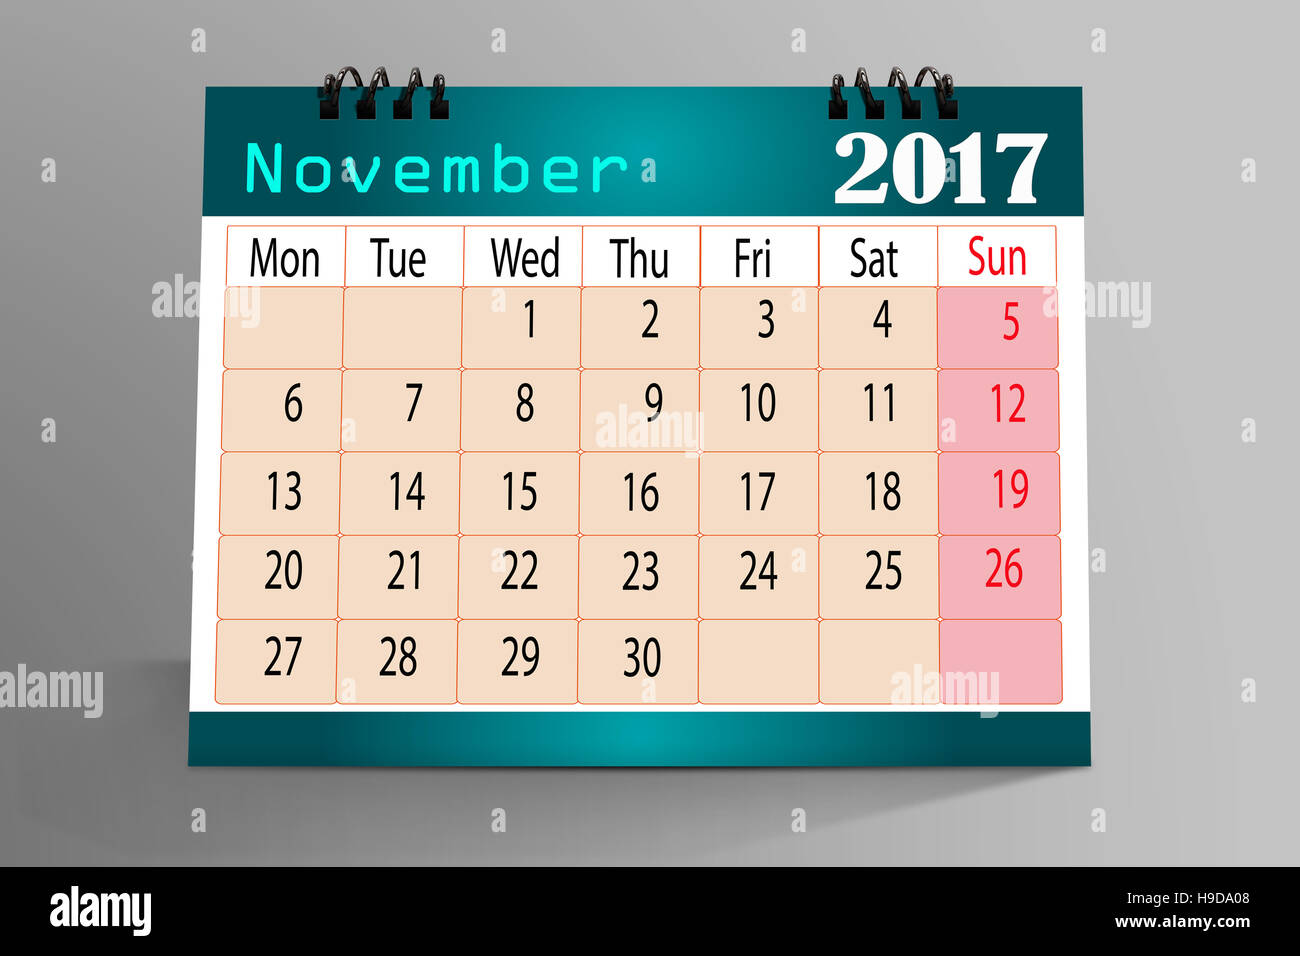 Desktop Calendar Design-November 2017 Stock Photo, Royalty Free ...